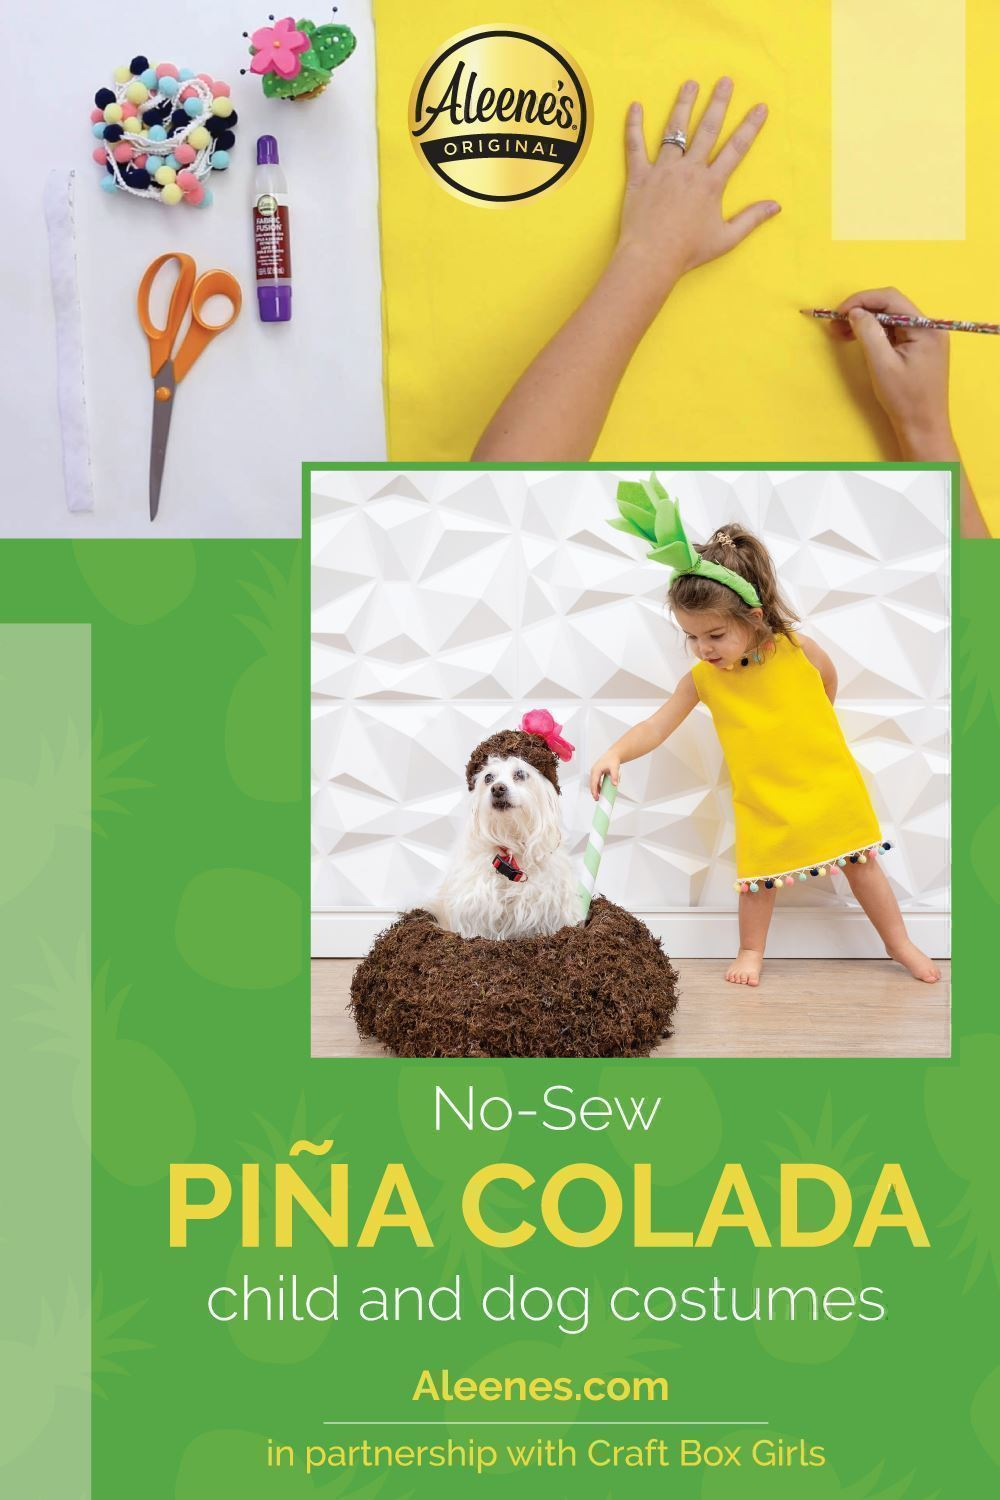 Piña Colada Child and Dog Costumes